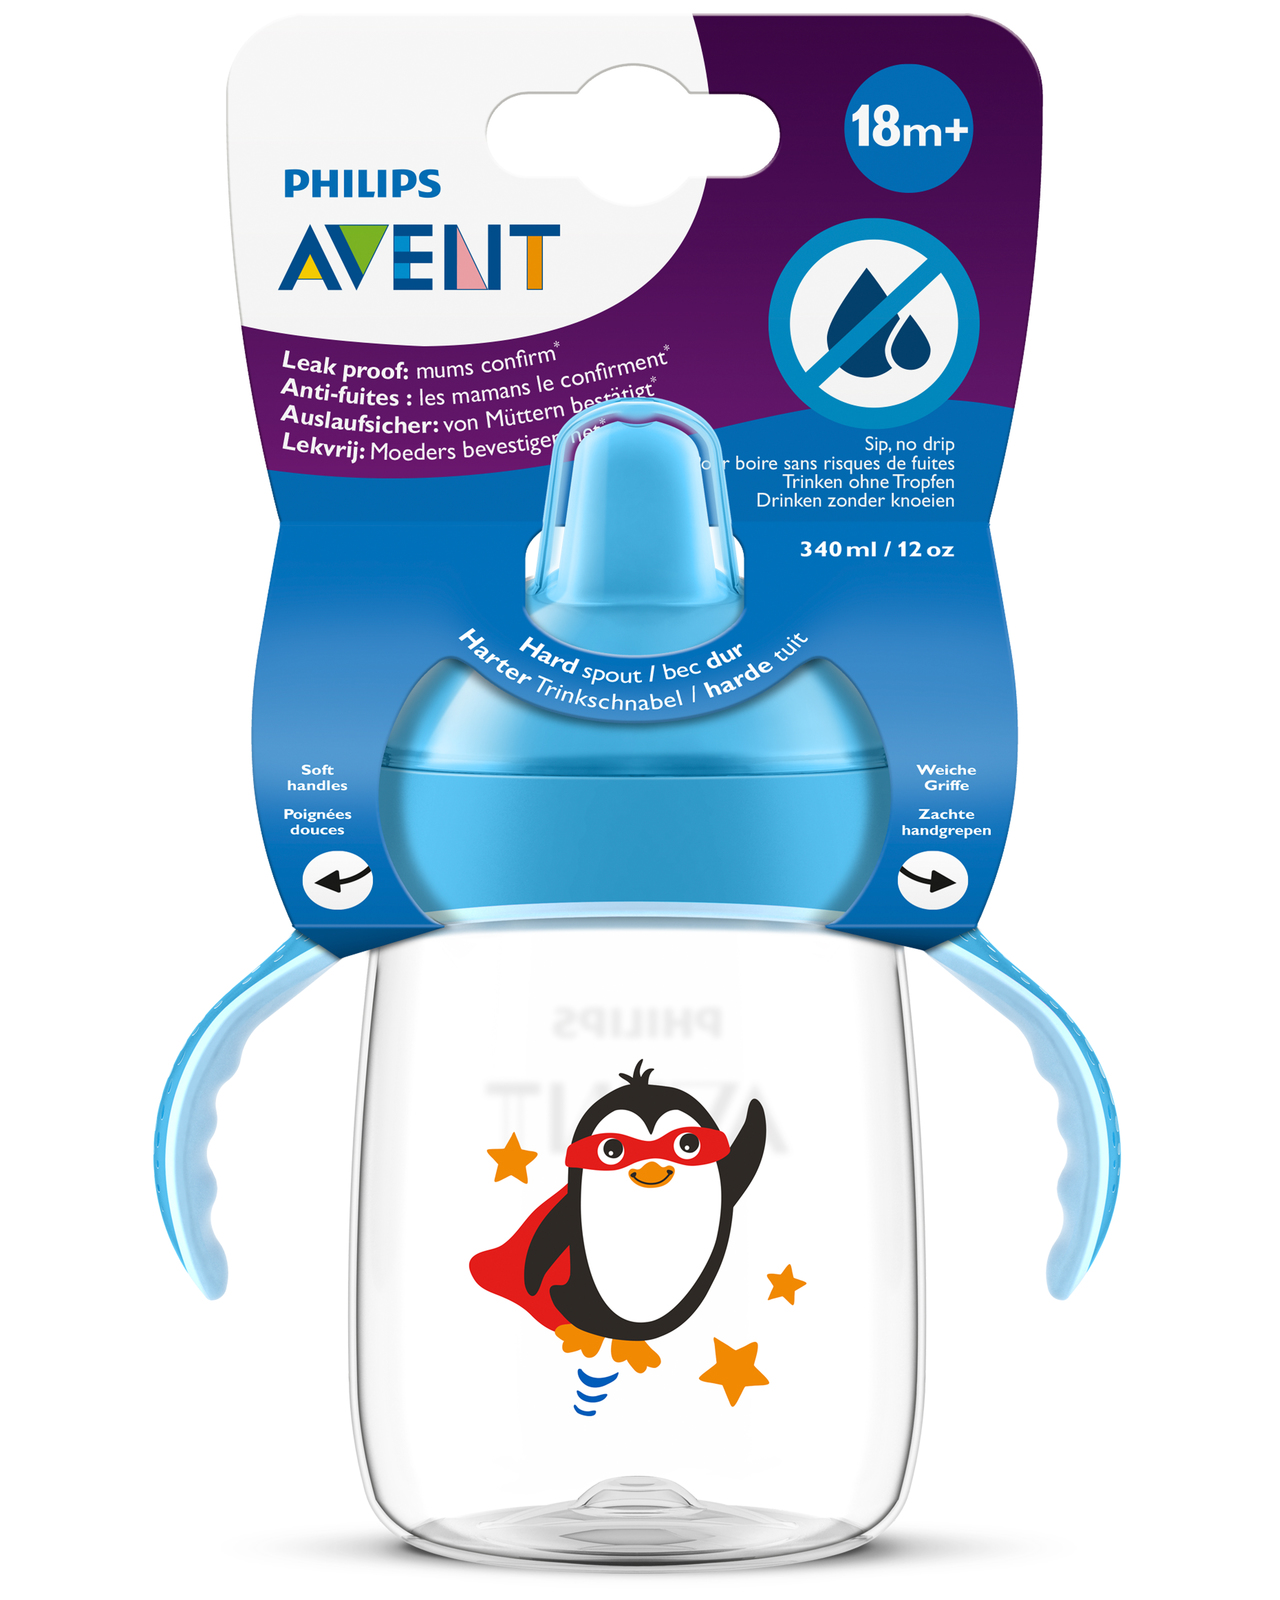 Avent: Sip No Drip - Blue (340ml) image